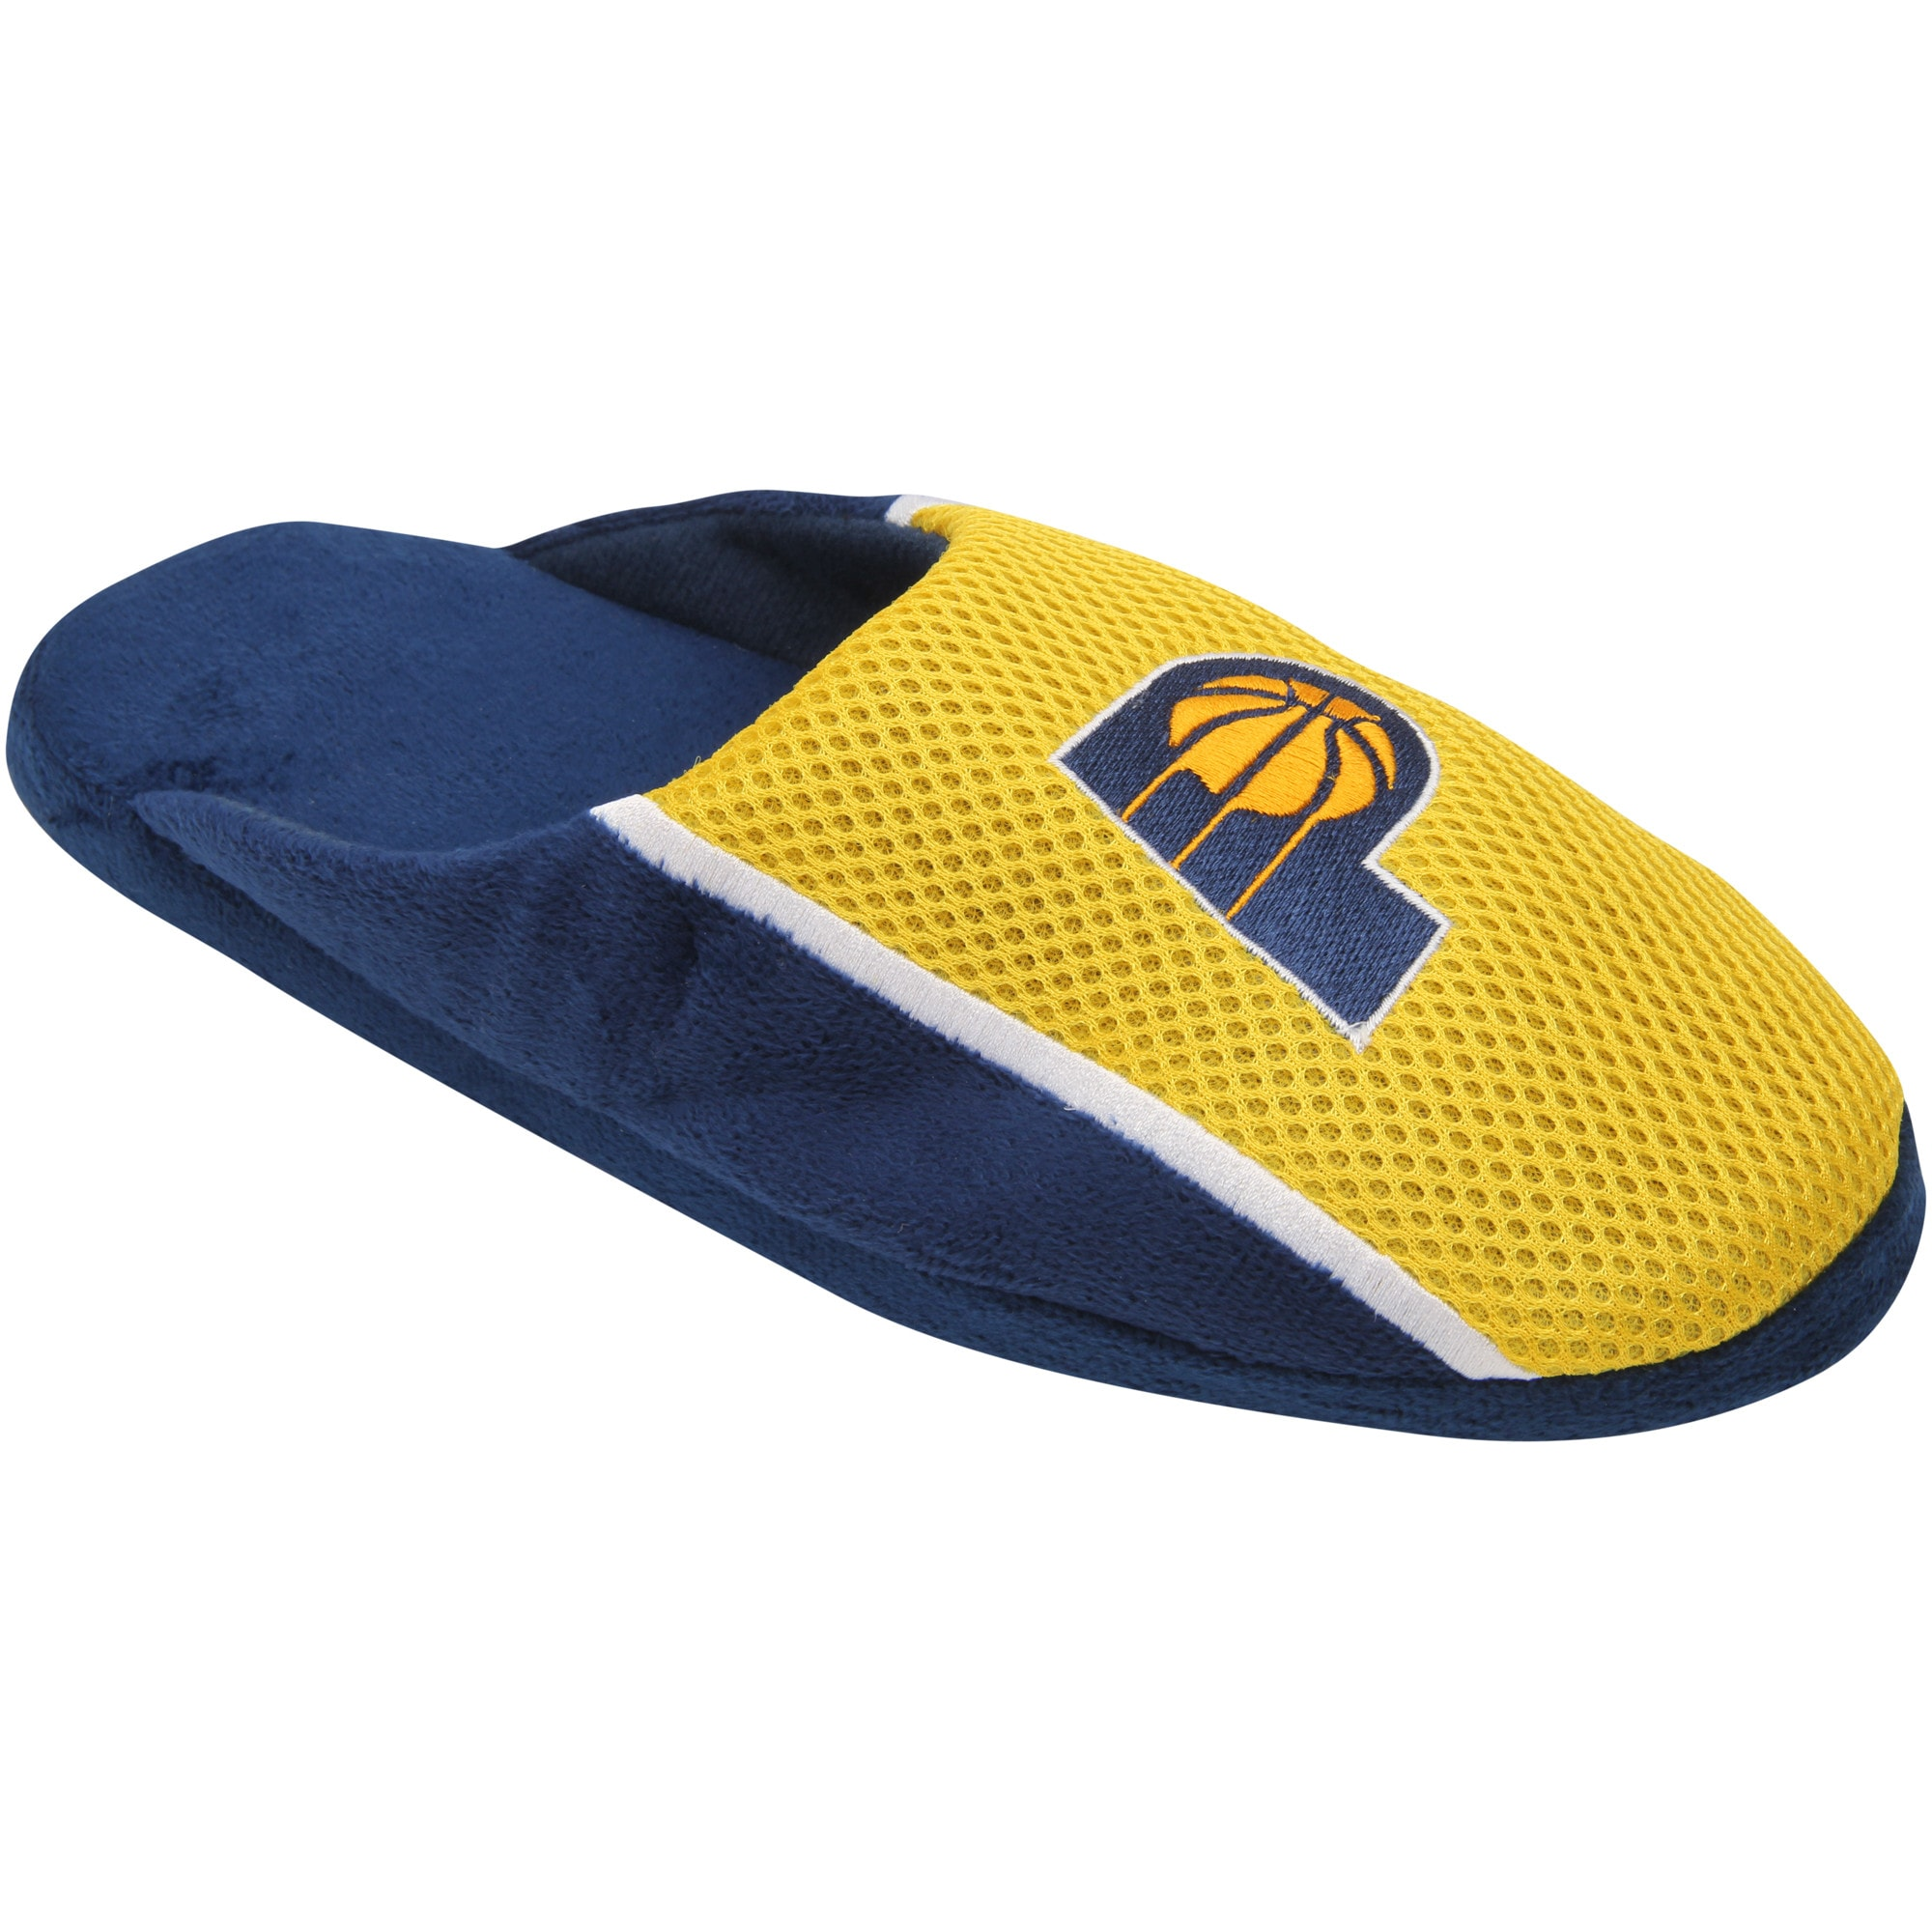 Indiana Pacers Jersey Slide Slippers